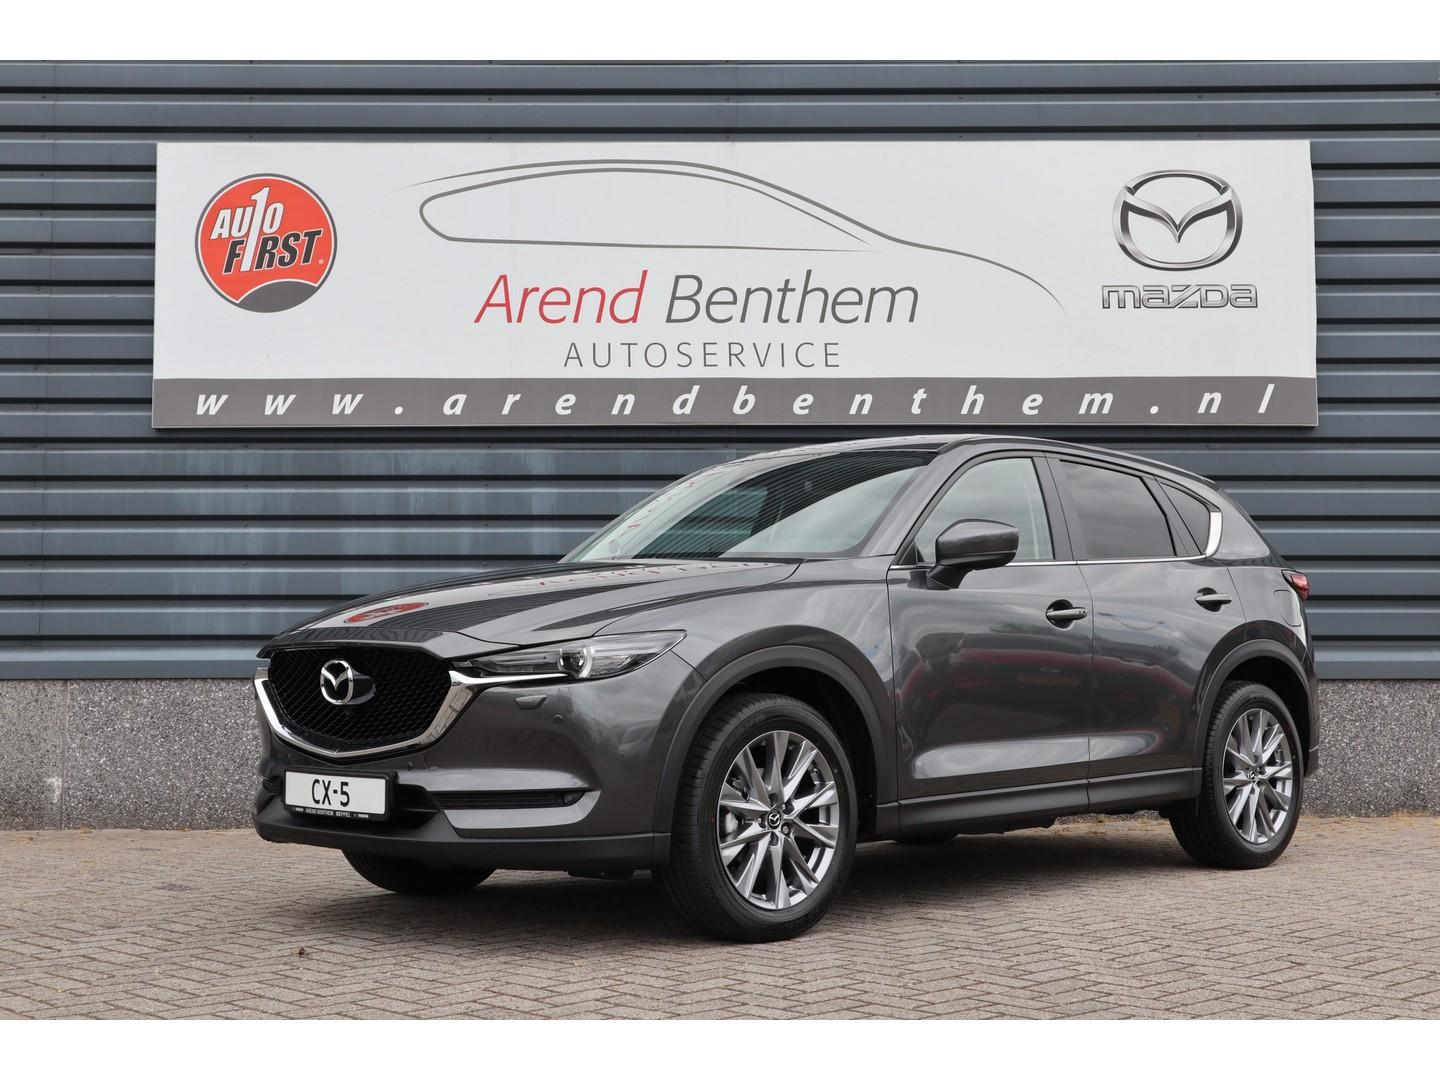 Mazda Cx-5 2.0 skyactiv-g 165 style selected - private lease € 532,- p.m.